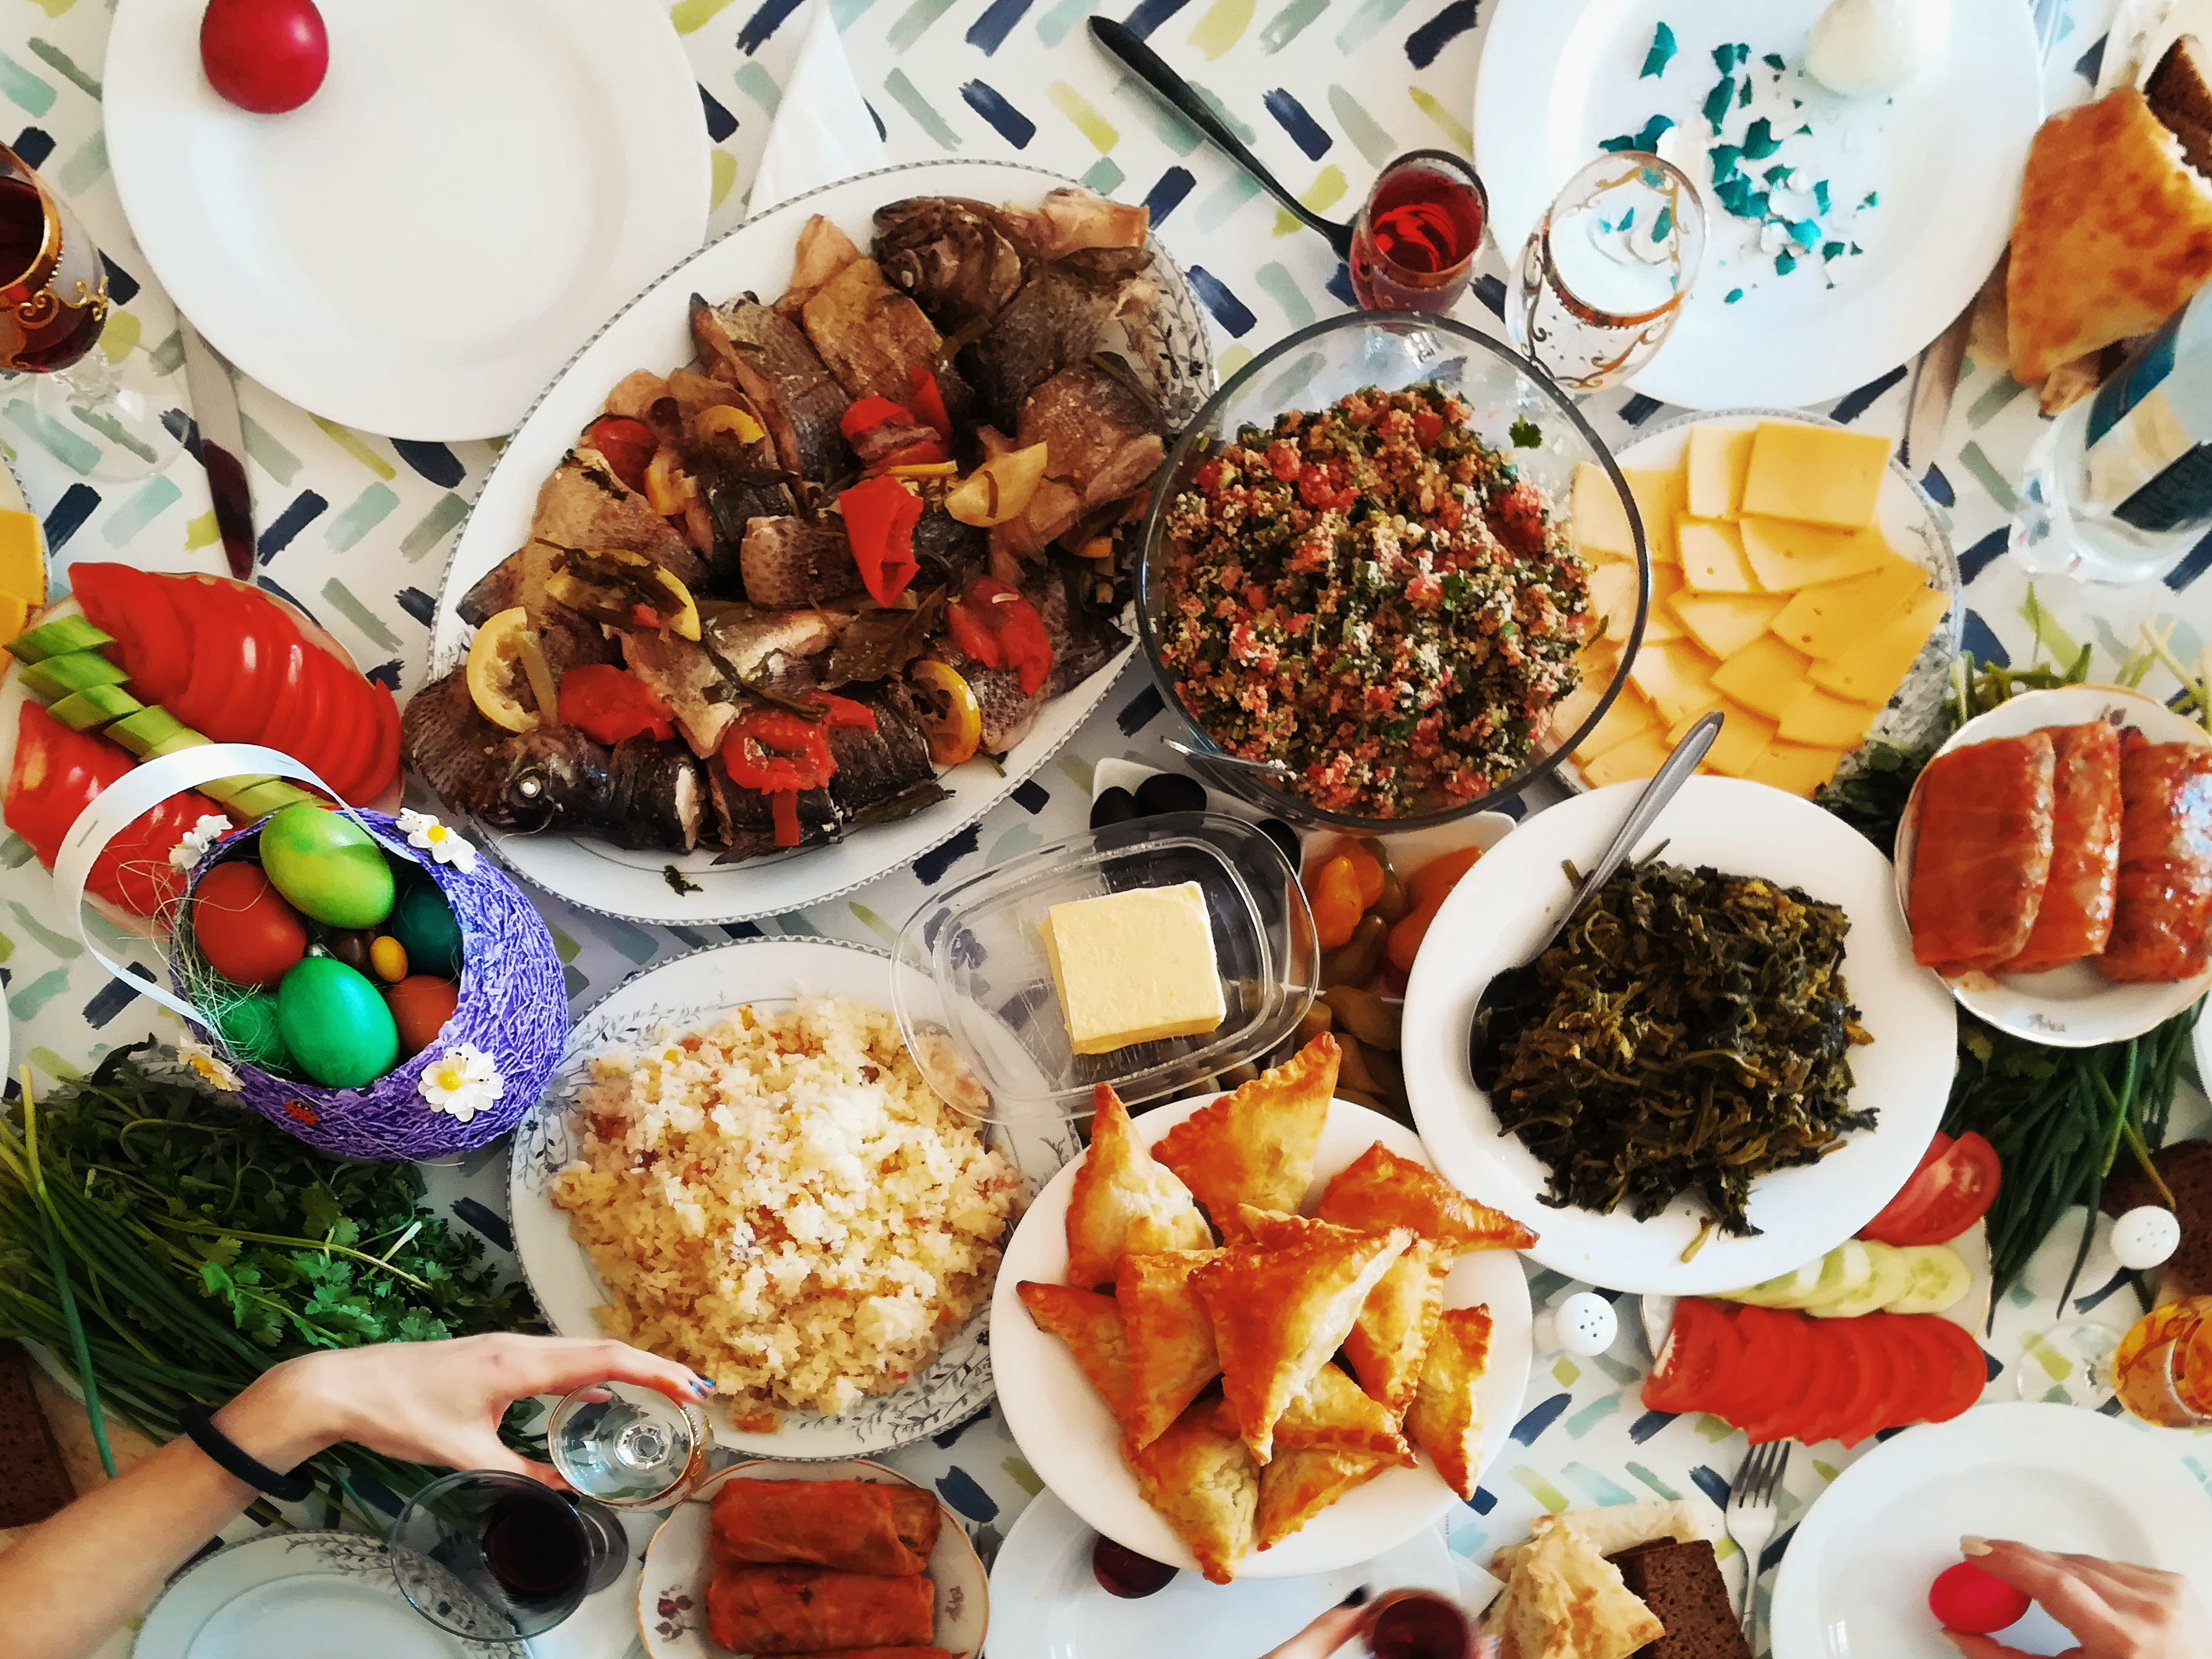 The sharing of food is significant to Armenian hospitality